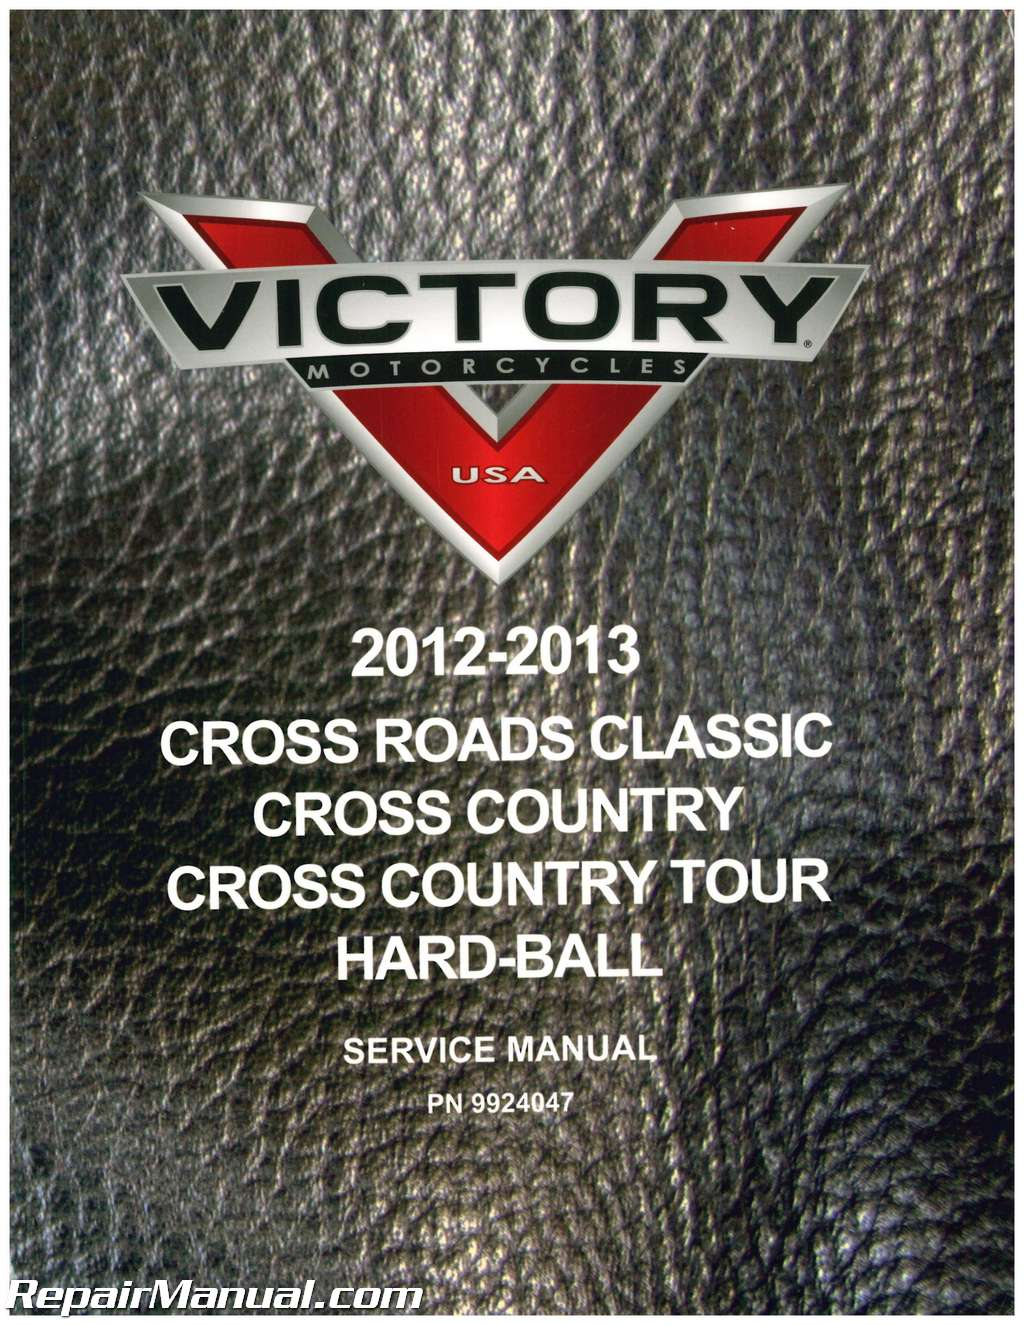 2012 2013 victory cross roads classic cross country cross country tour hard ball motorcycle Service Manuals victory motorcycle service manual